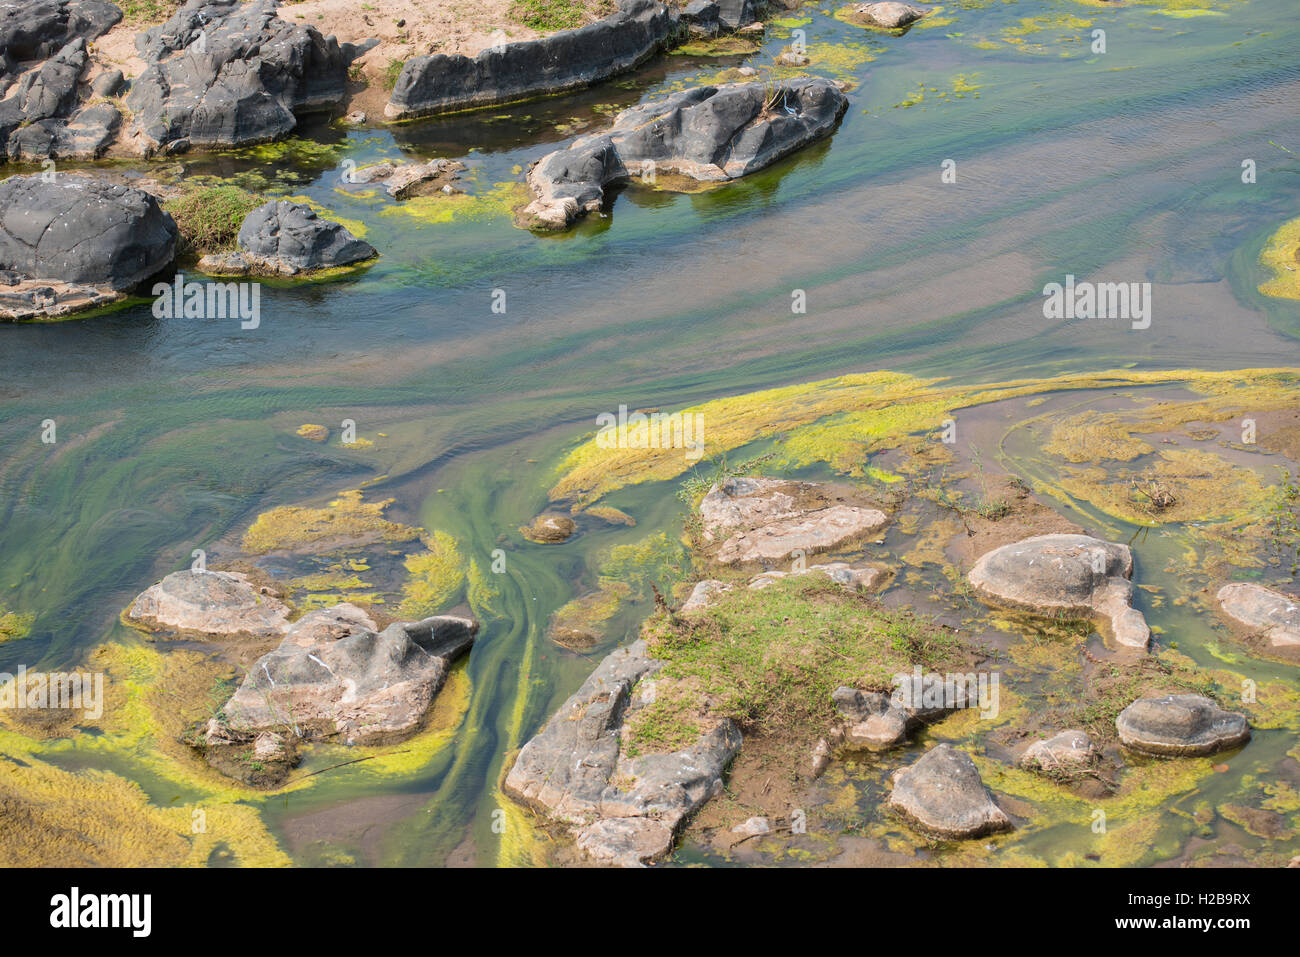 Algal growth in a river due to the level dropping so low during a drought - Stock Image